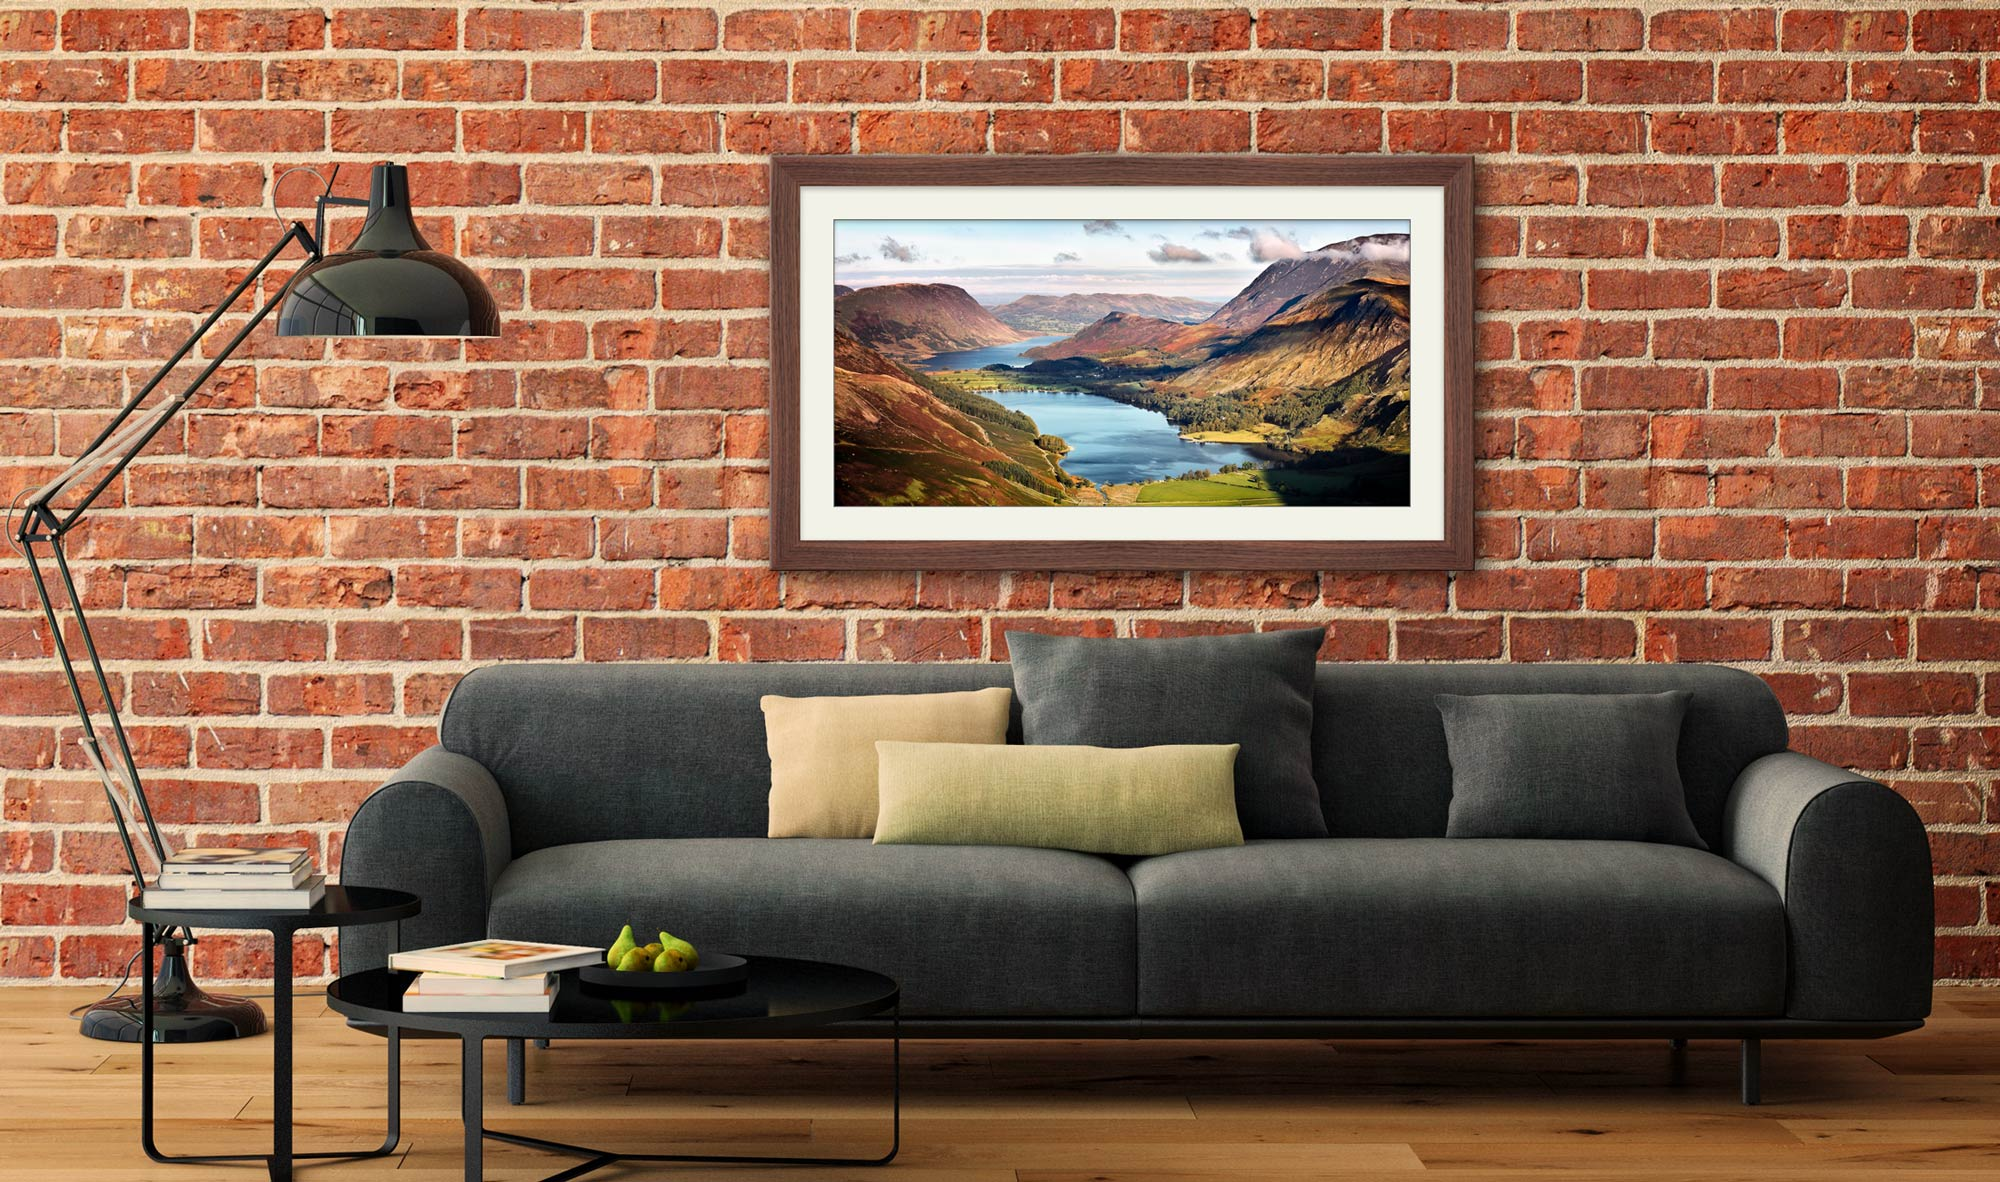 Buttermere and Crummock Water - Framed Print with Mount on Wall